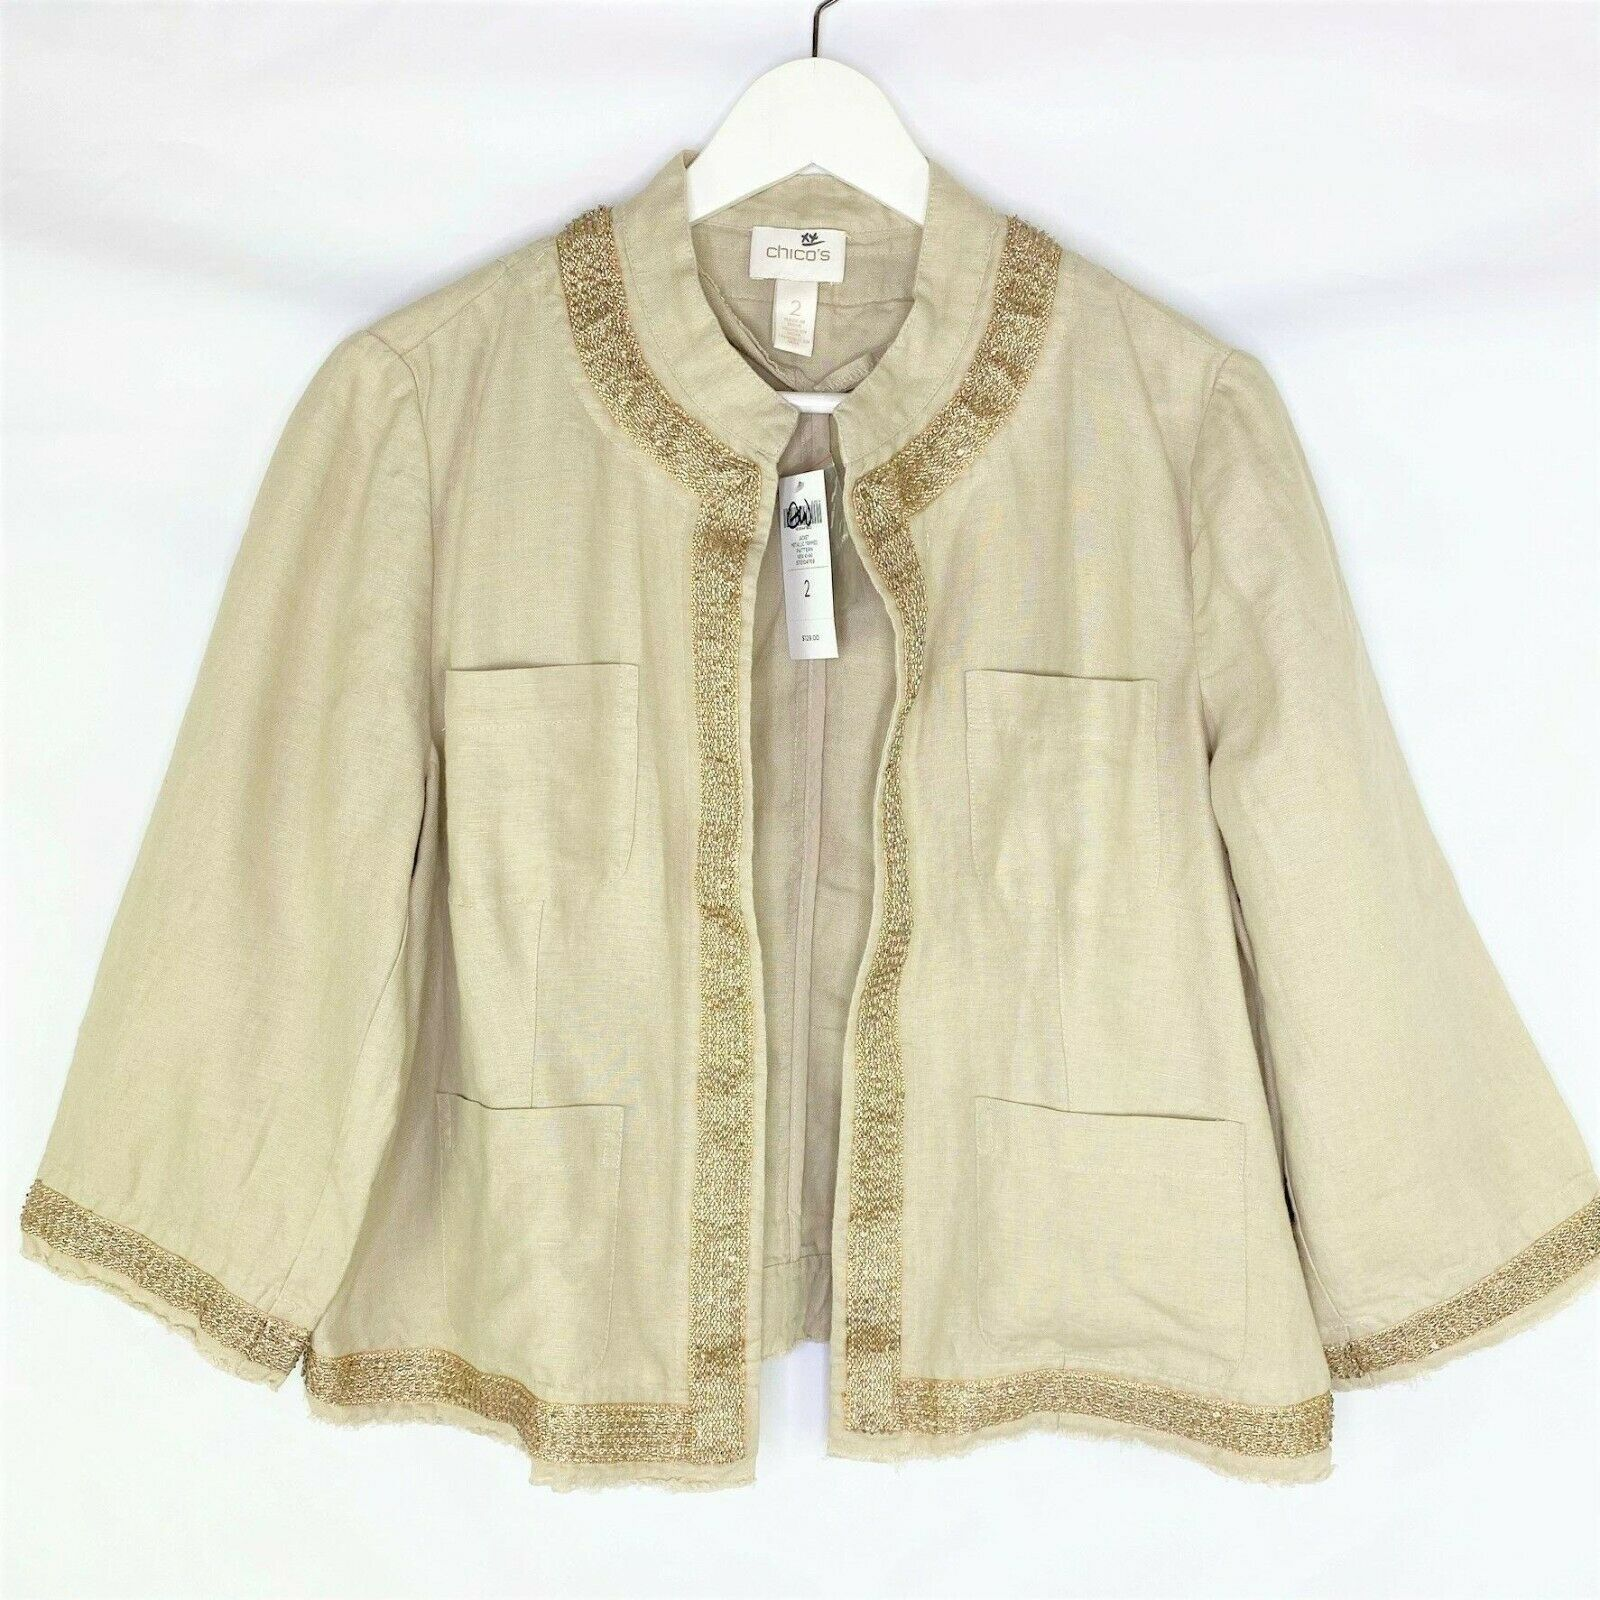 NWT Chico's 100% Linen Open Front Jacket w/ Gold Beaded Trim Size 2 (L/12)